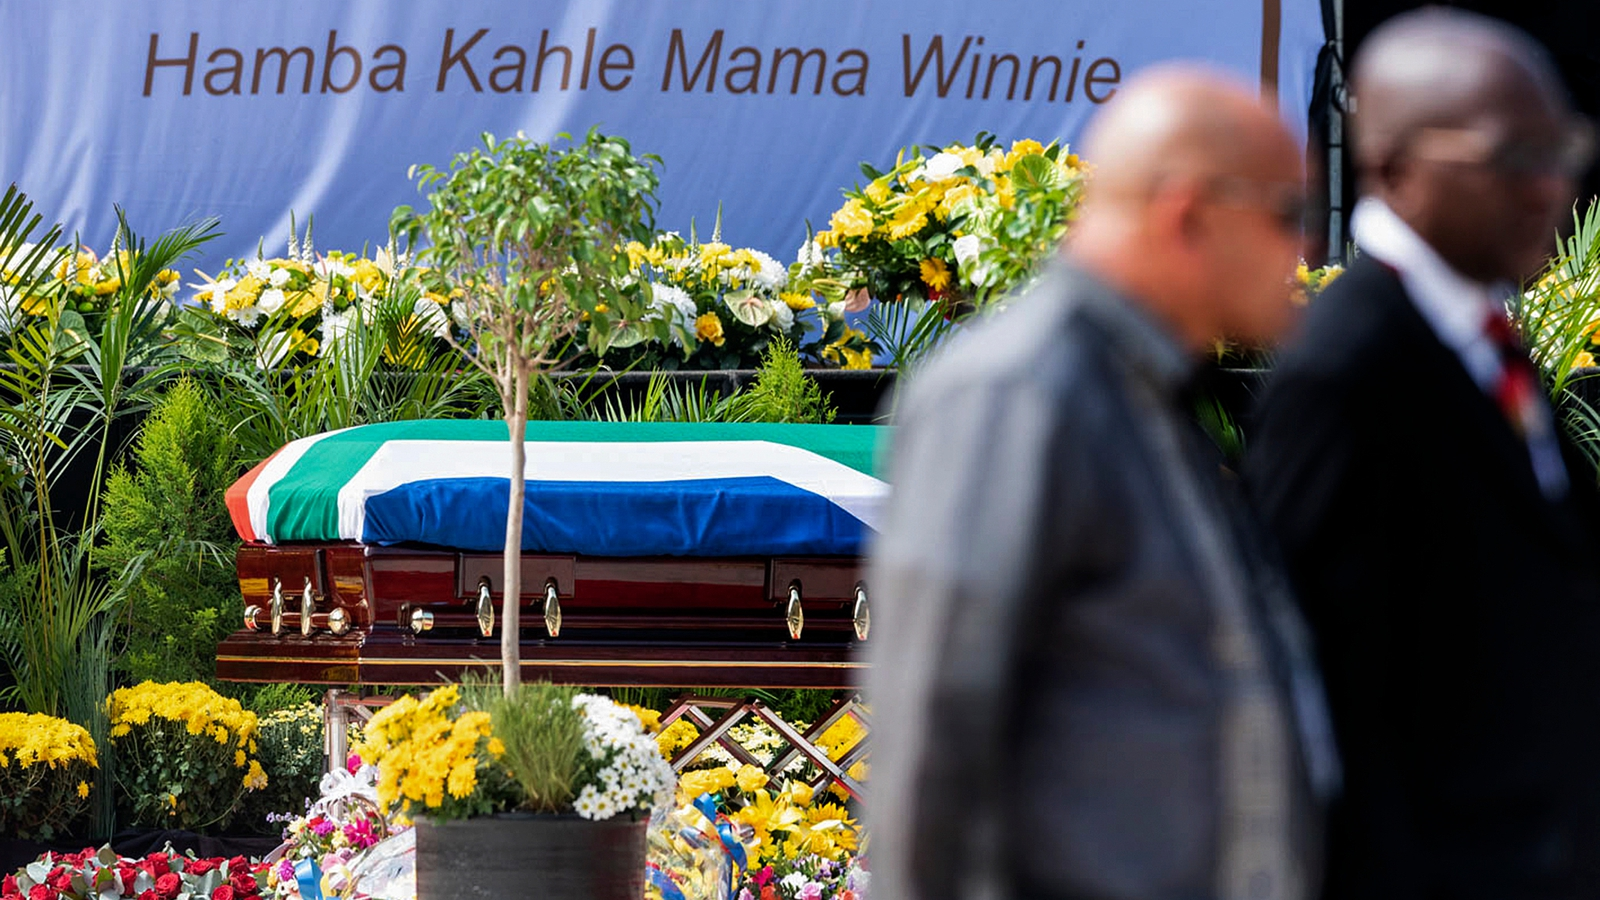 Thousands Gather For Funeral Of Winnie Mandela